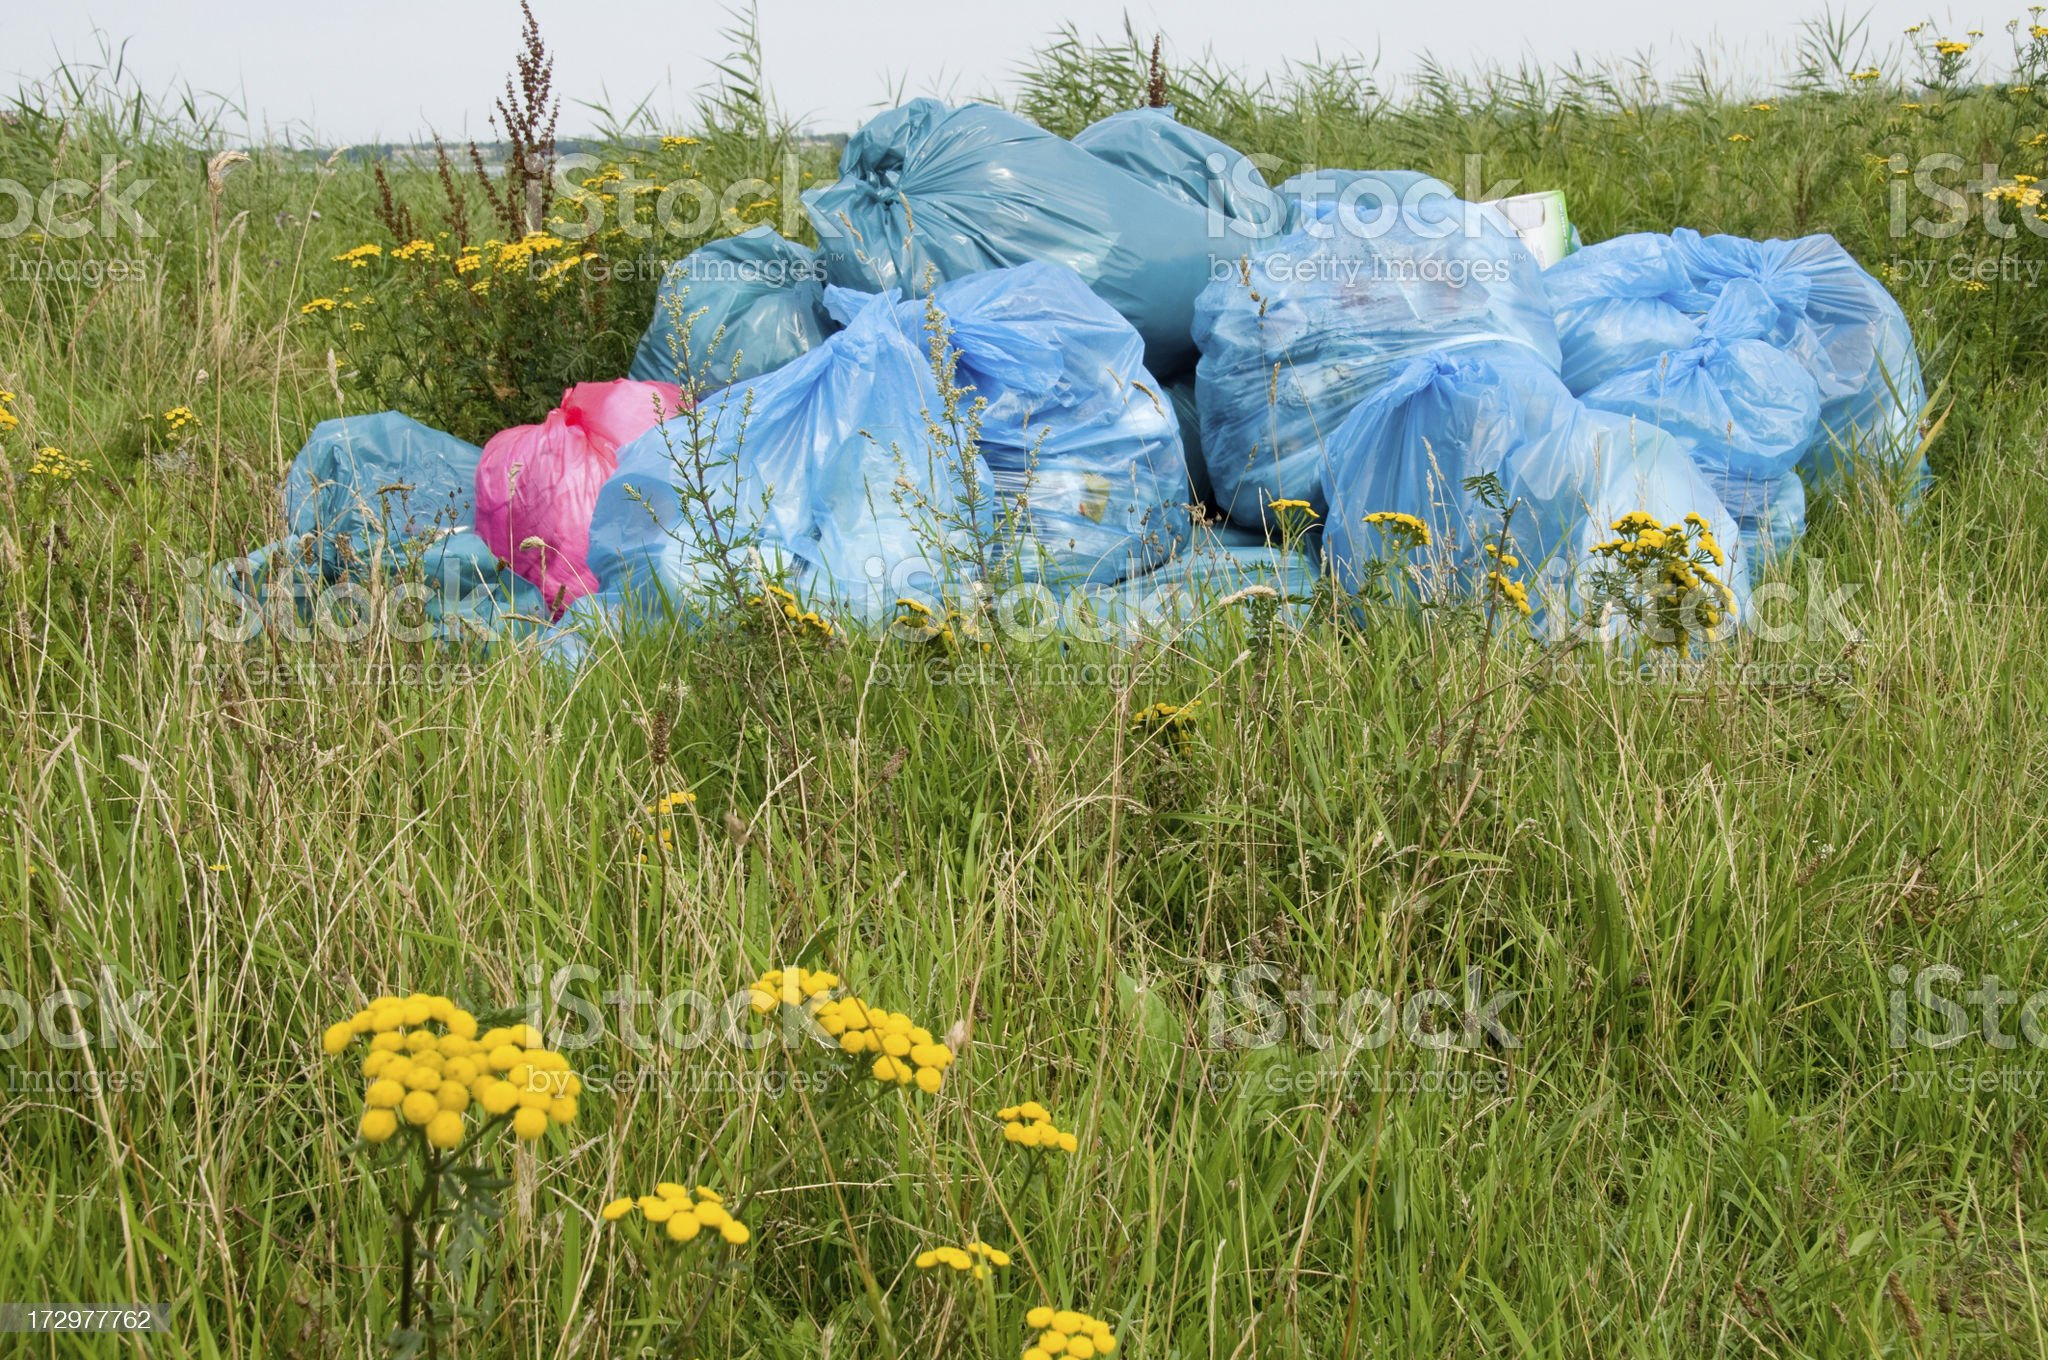 Pollution Waste,garbage bags, in field with flowers 2 royalty-free stock photo